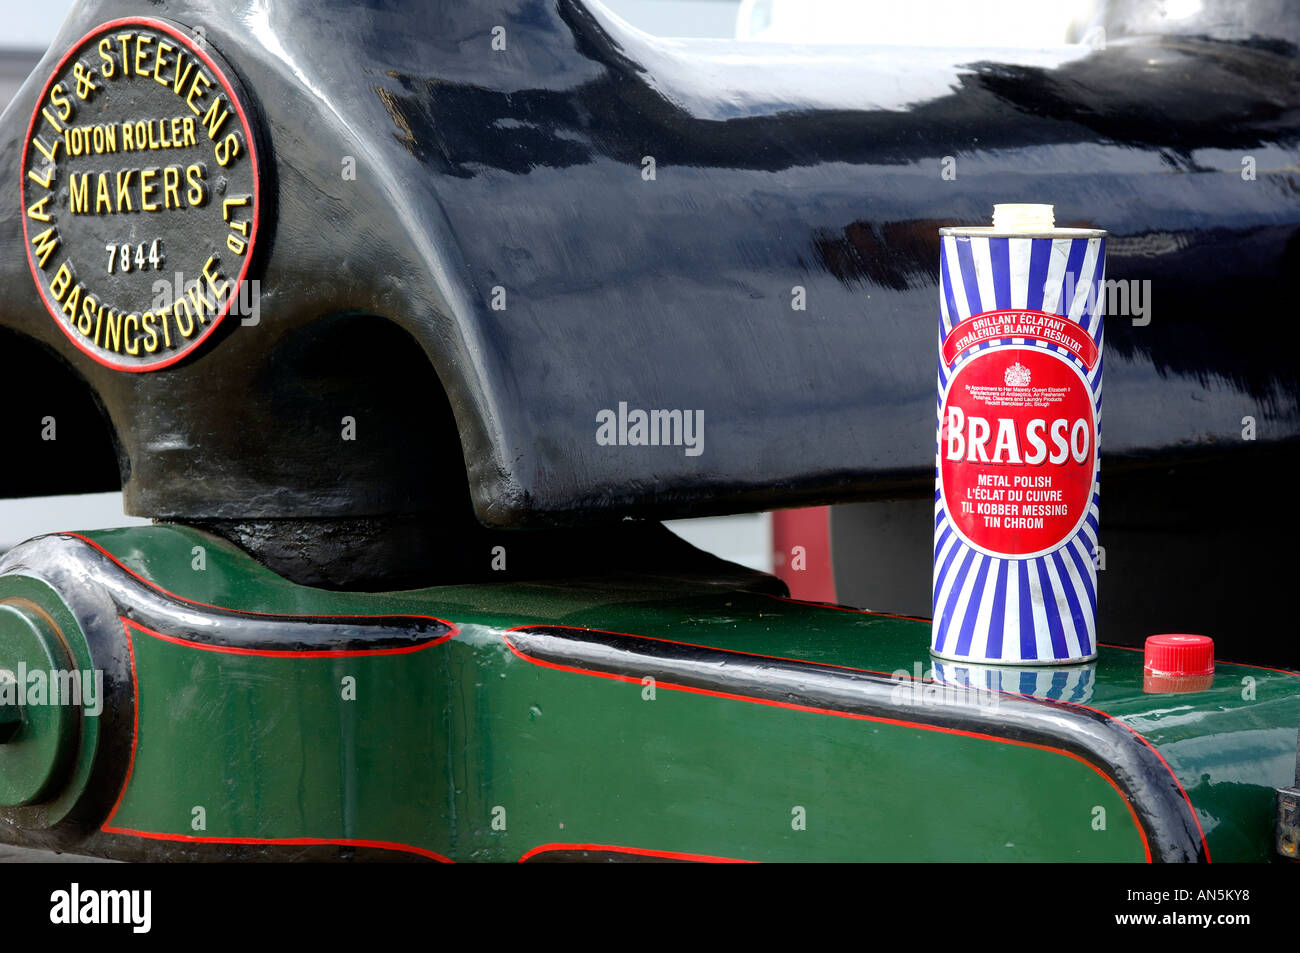 Can of brasso metal polish stood on front of vintage steam engine showing highly polished ironwork - Stock Image